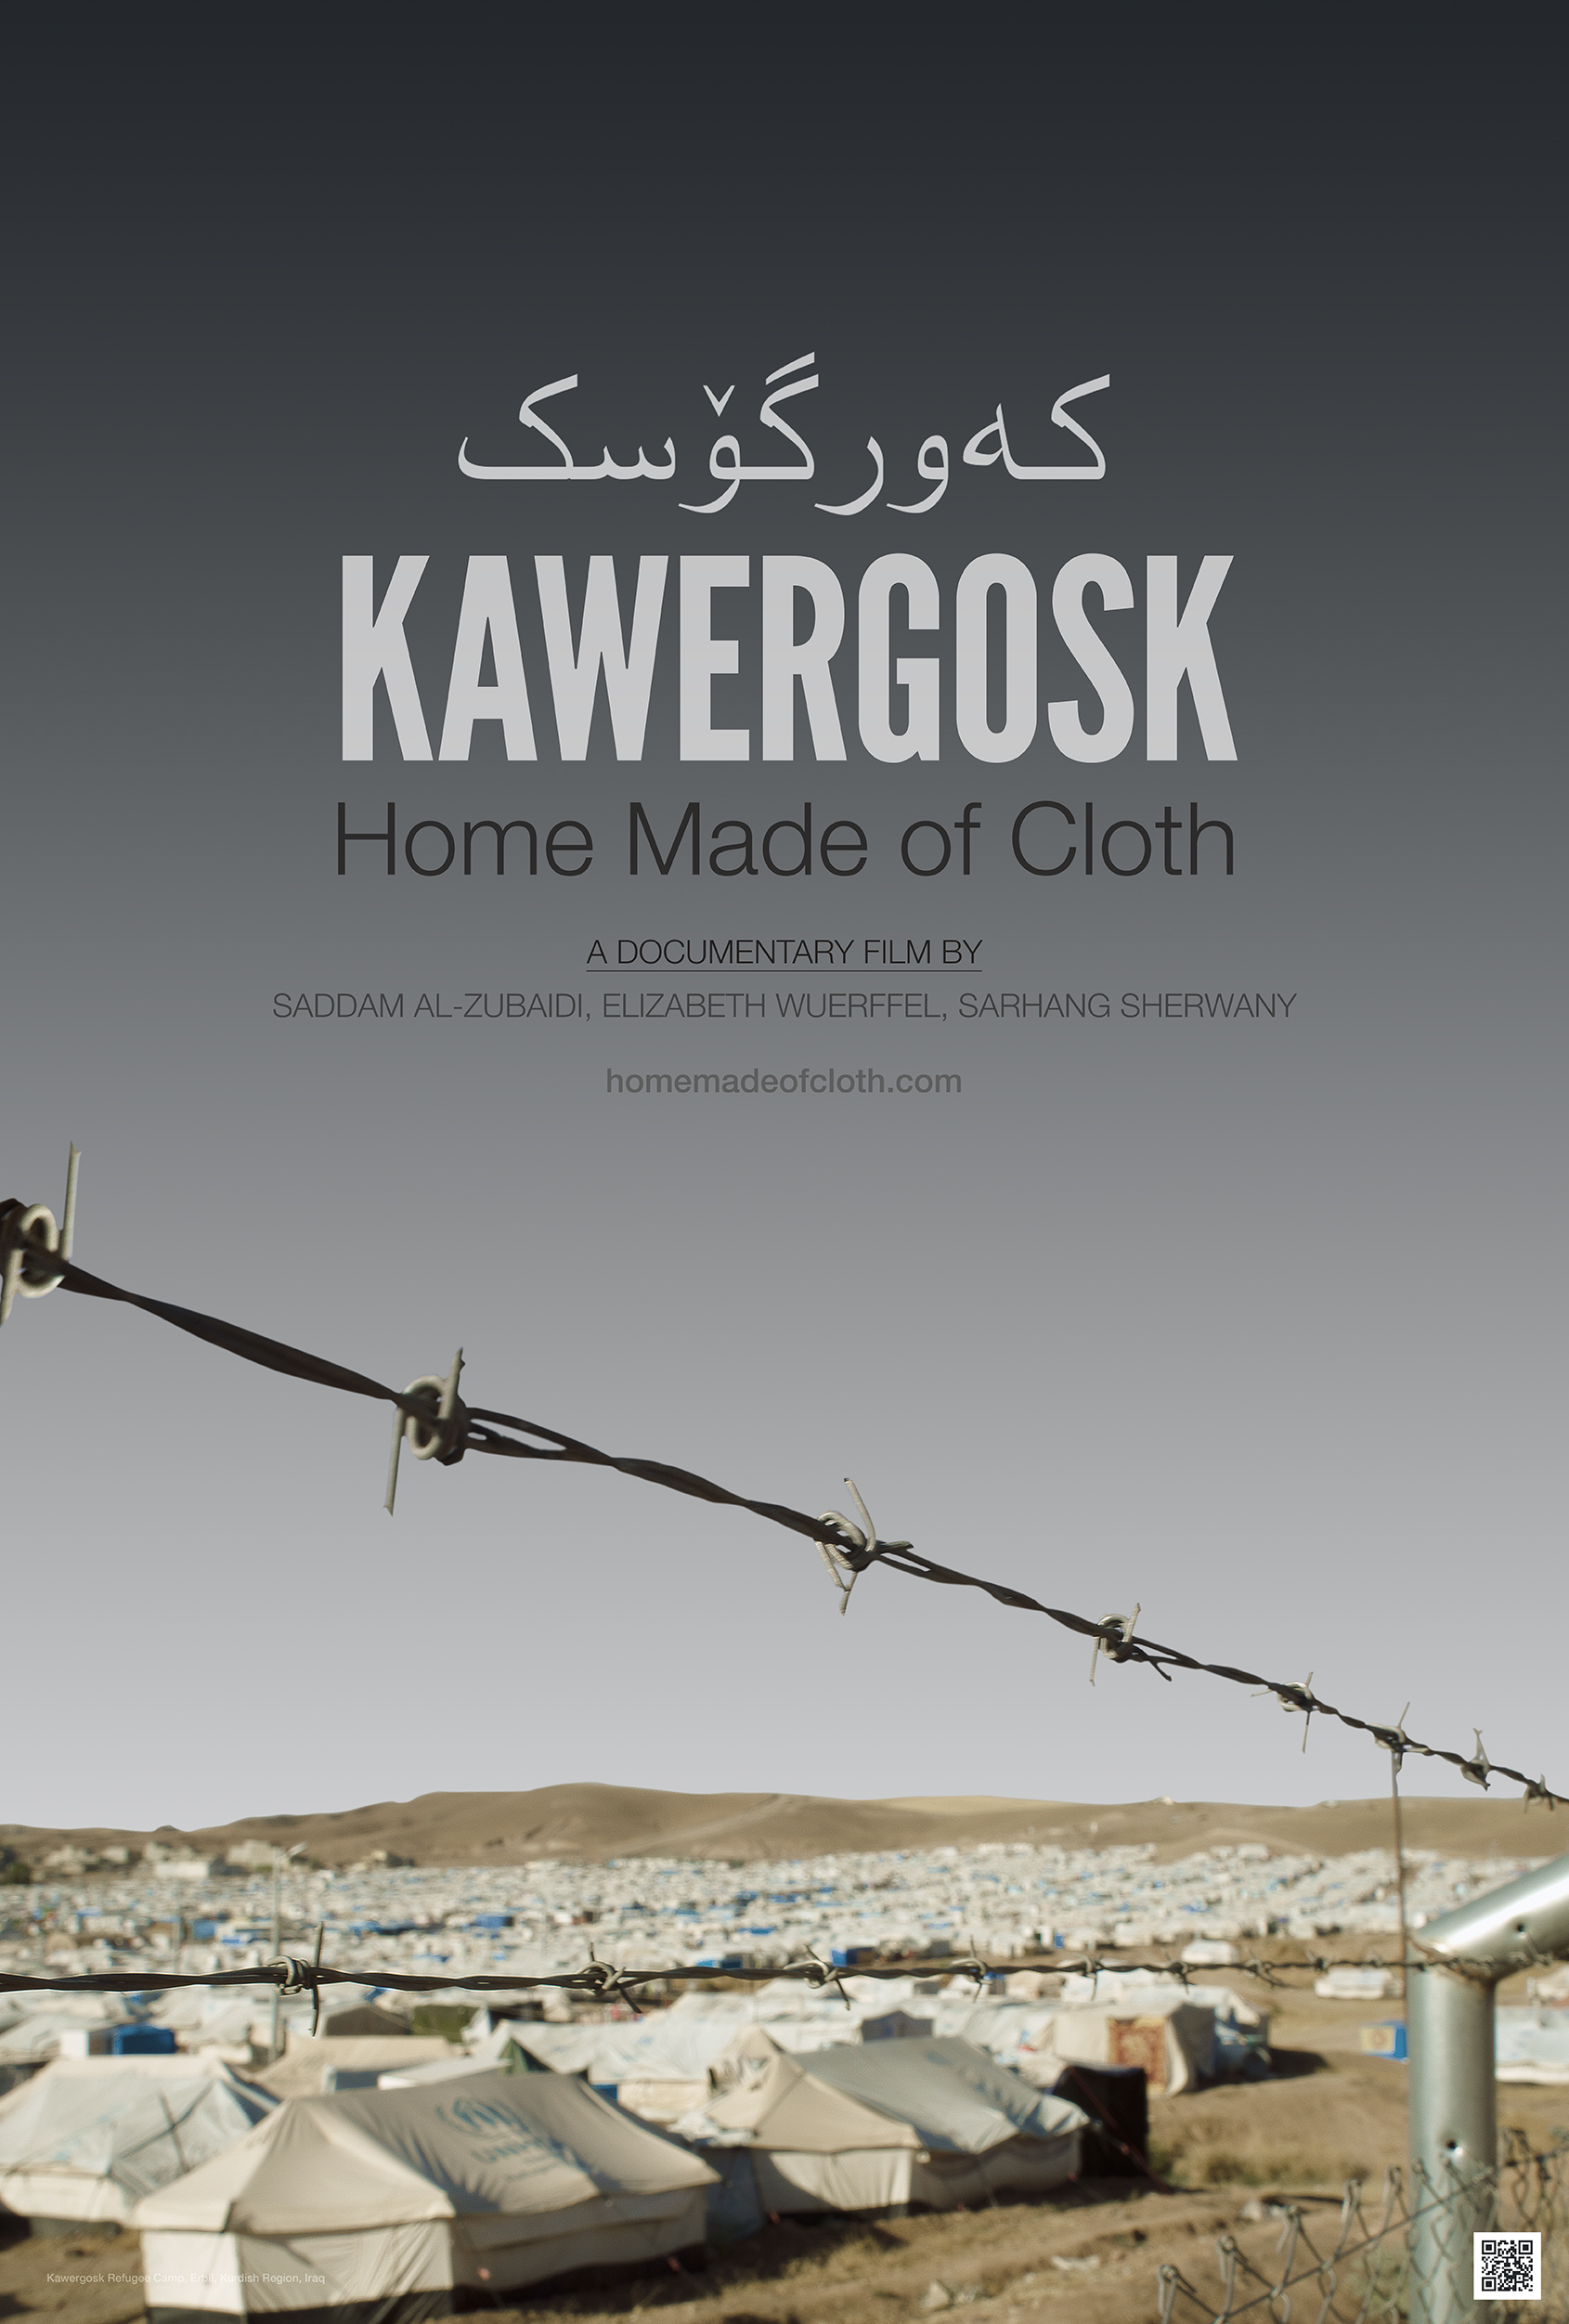 Kawergosk: Home Made of Cloth